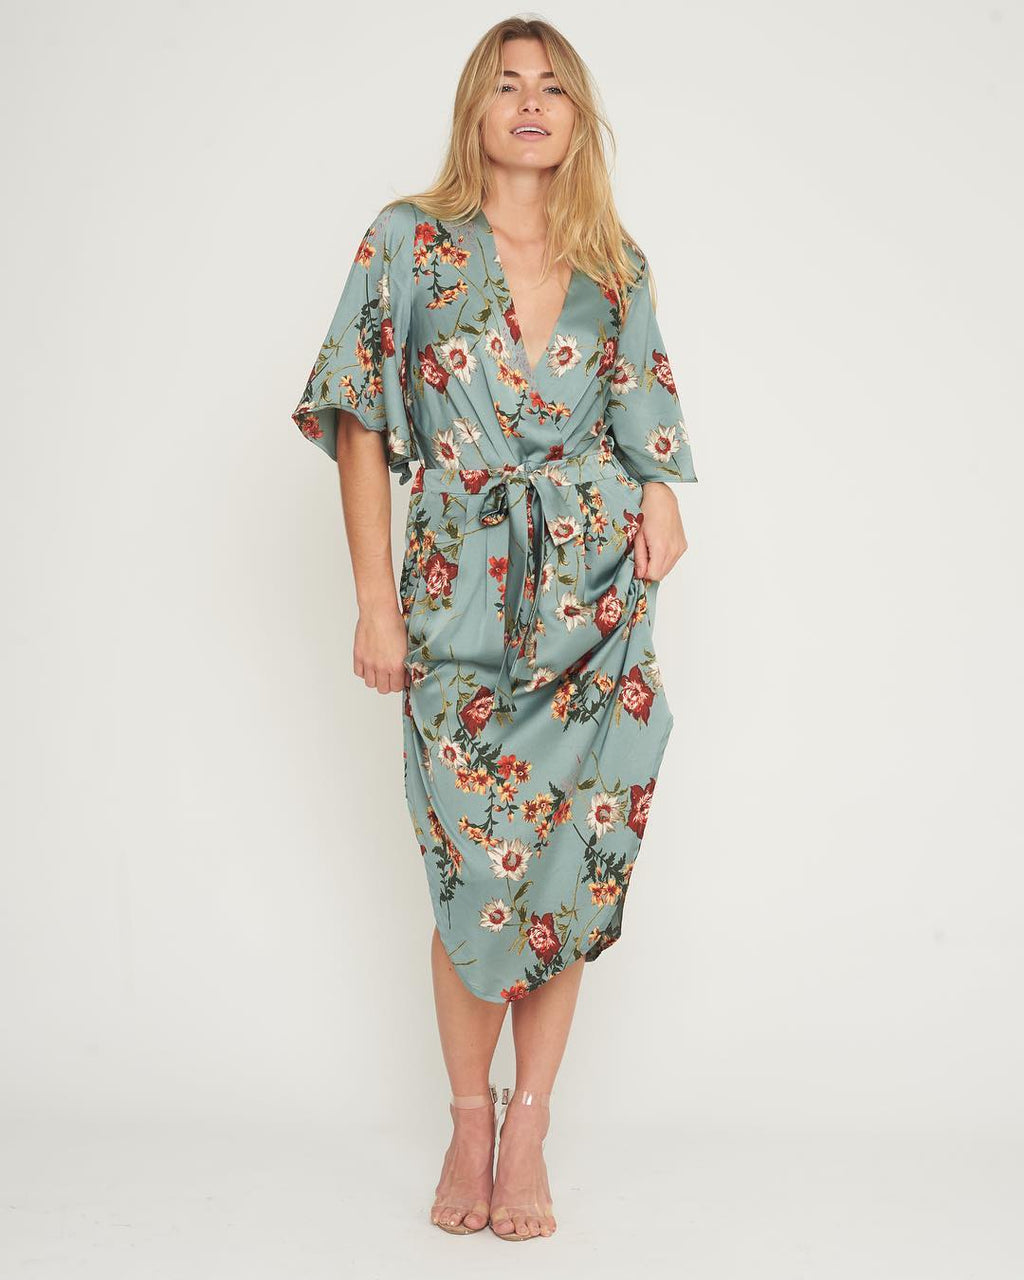 White Closet - Sage Floral Dress